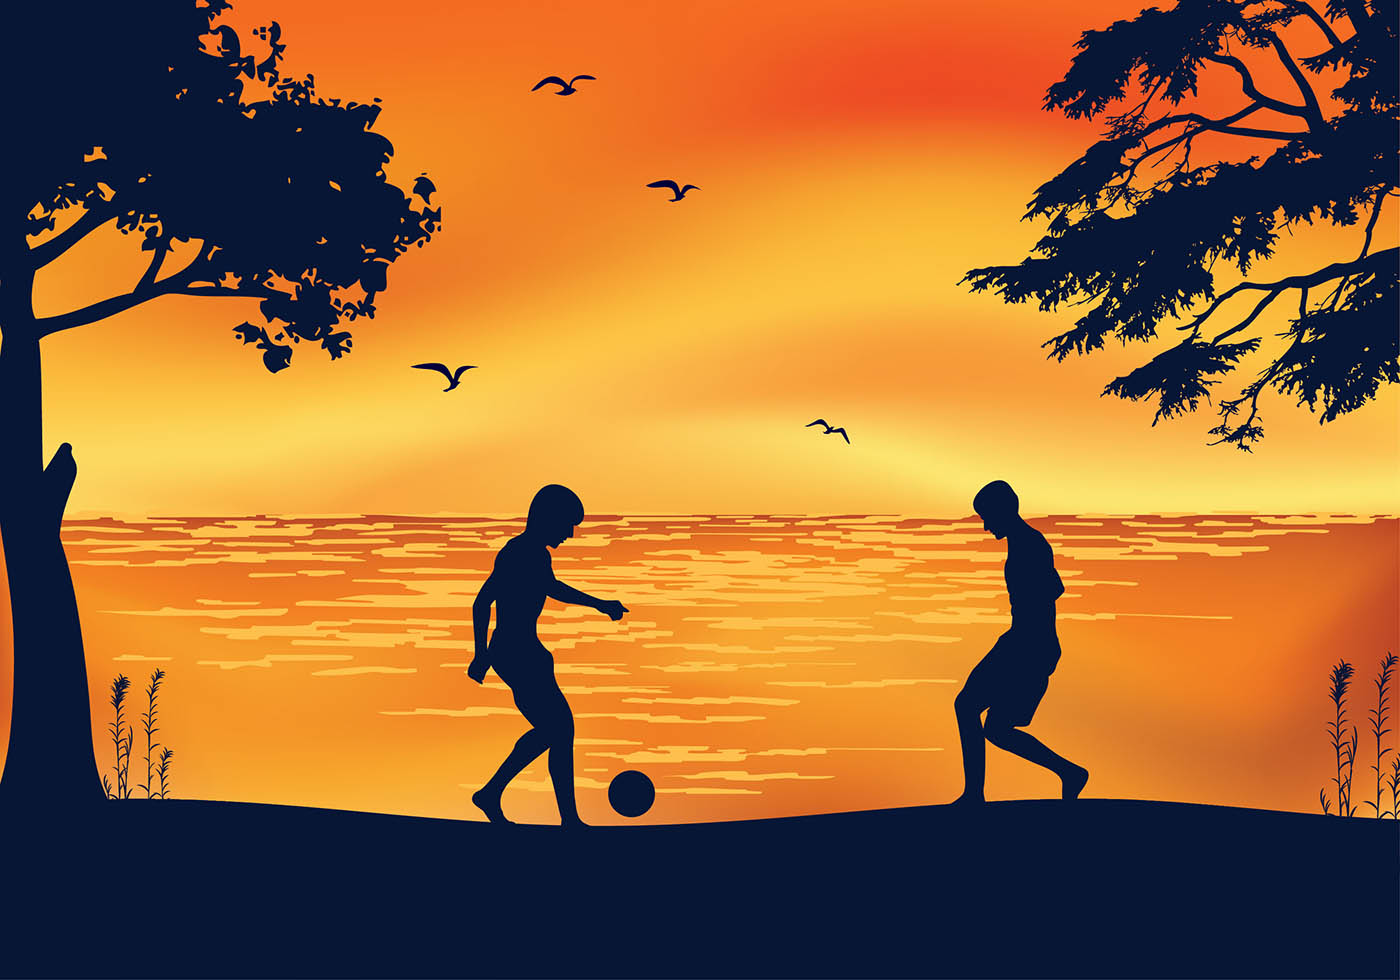 Cute Watercolor Olumpic Sports Equipment Background Vector: Soccer Beach Sunset Free Vector